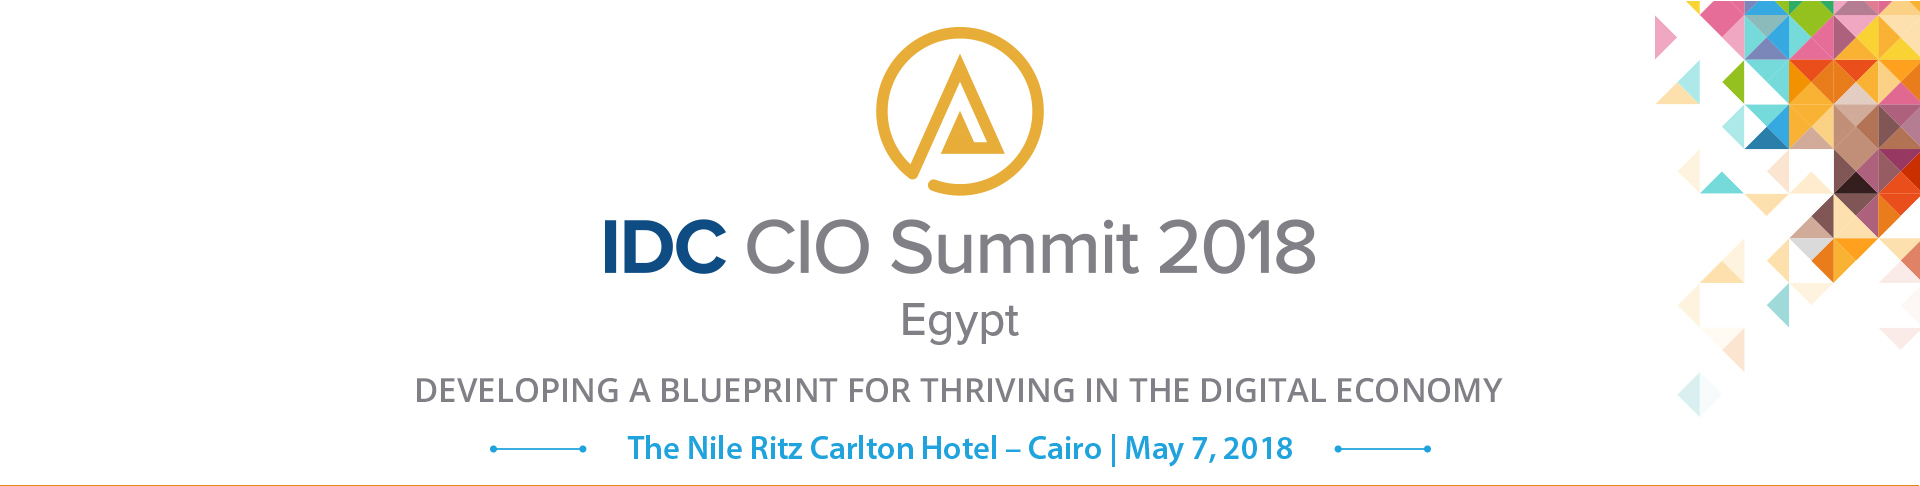 Middle east idc cio summit 2018 malvernweather Image collections